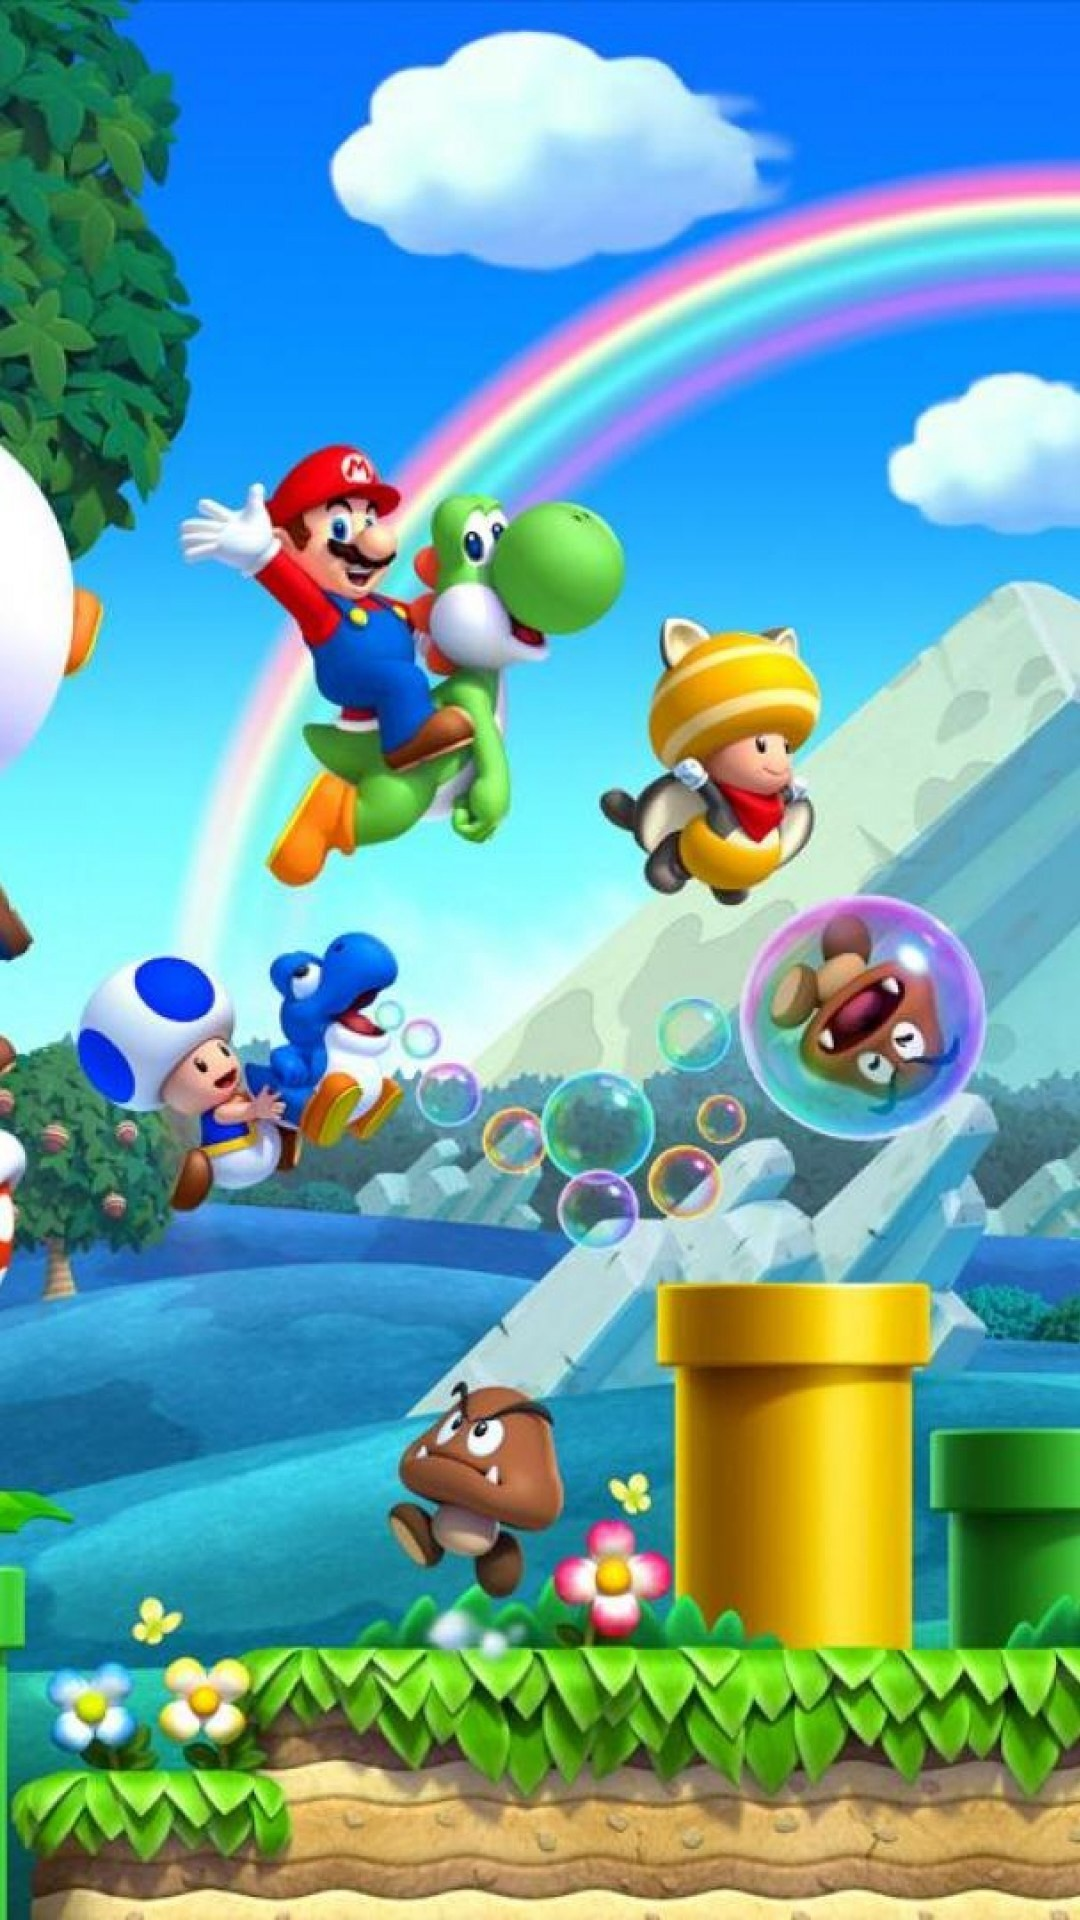 super mario live wallpaper apk -#main